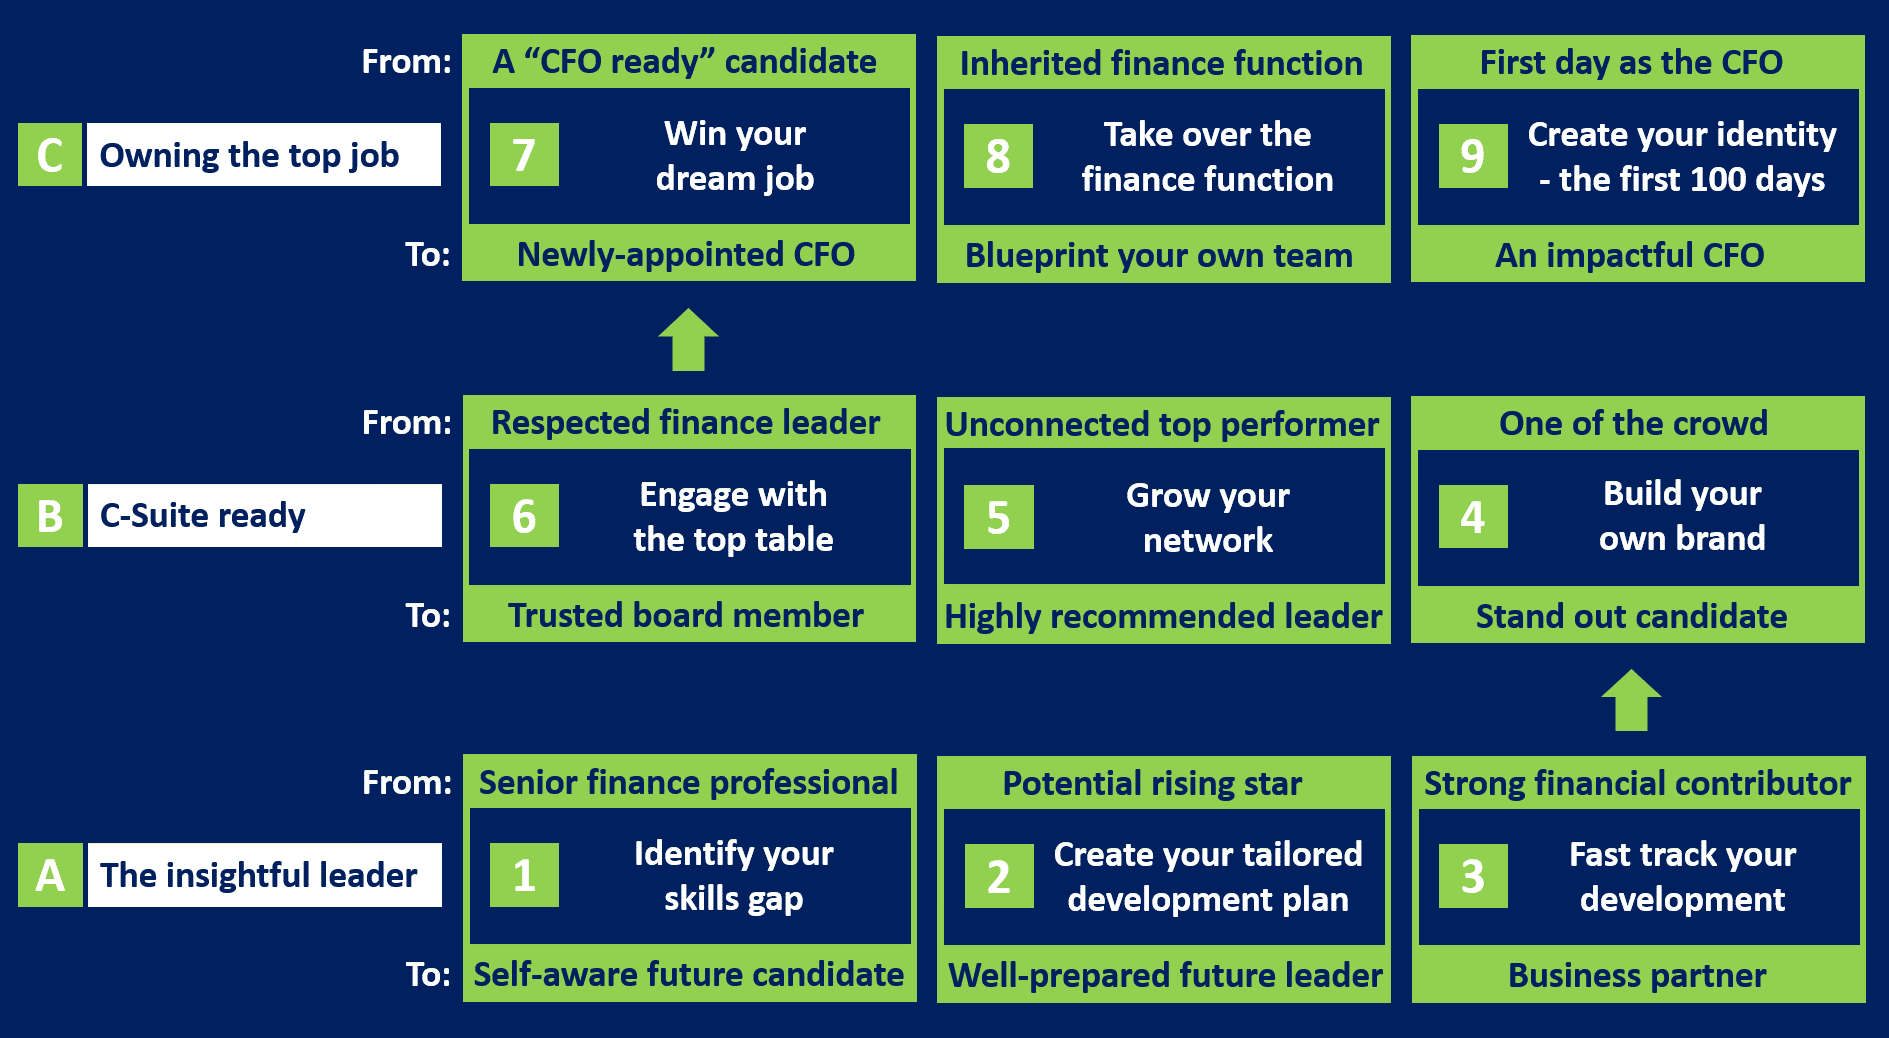 Securing your first CFO role using the Future CFO programme in GrowCFO